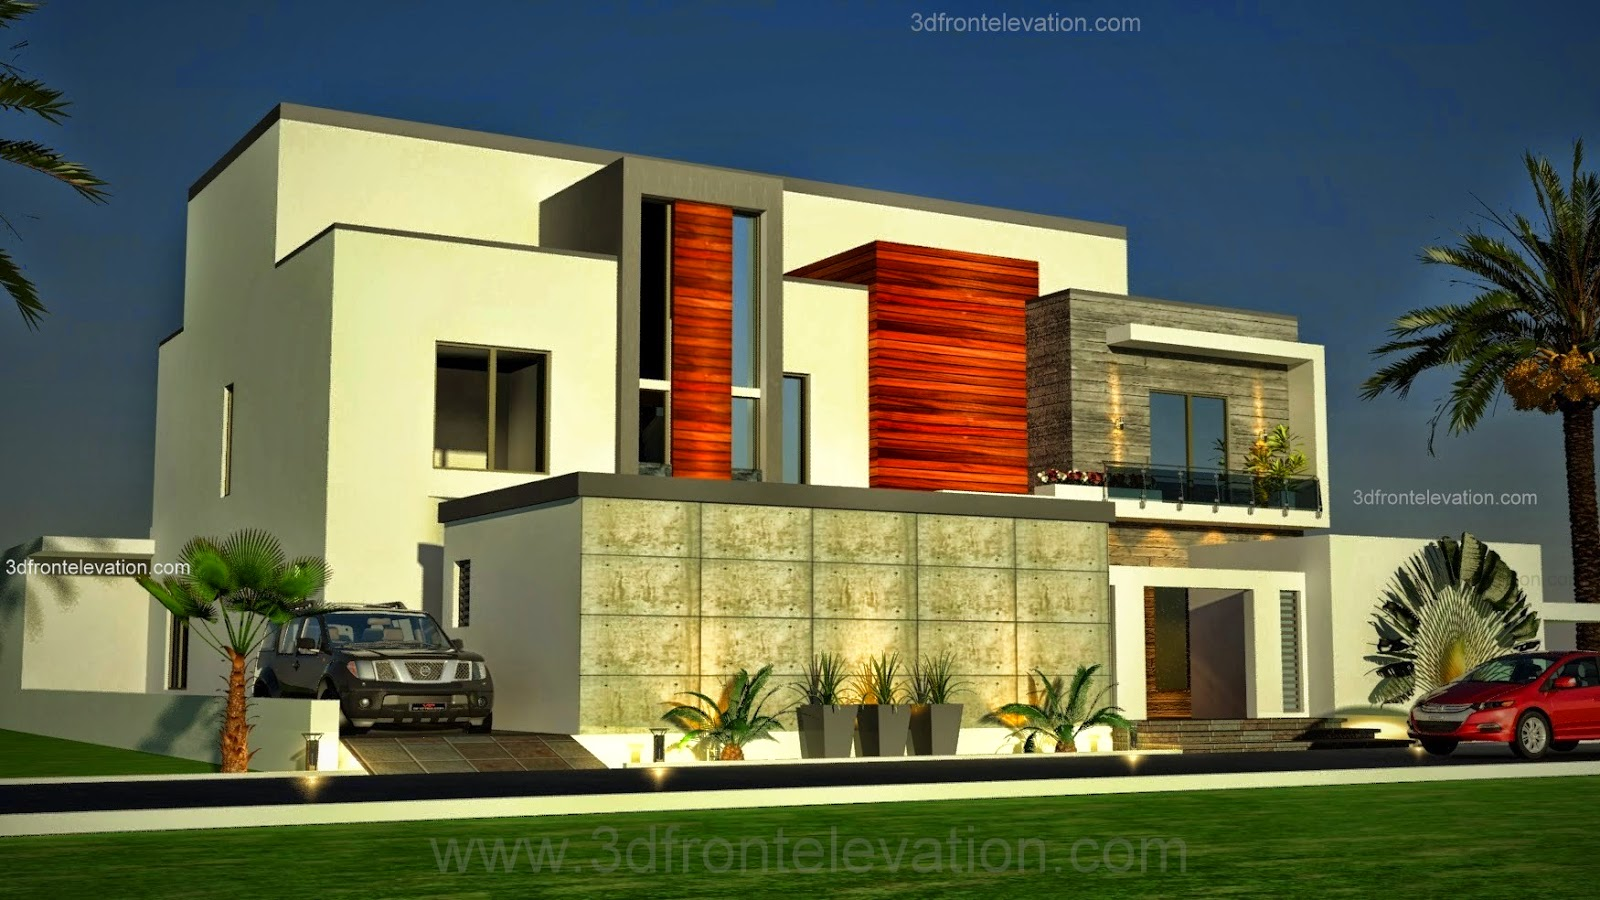 Modern homes elevations and plans in dubai joy studio for Contemporary home elevations